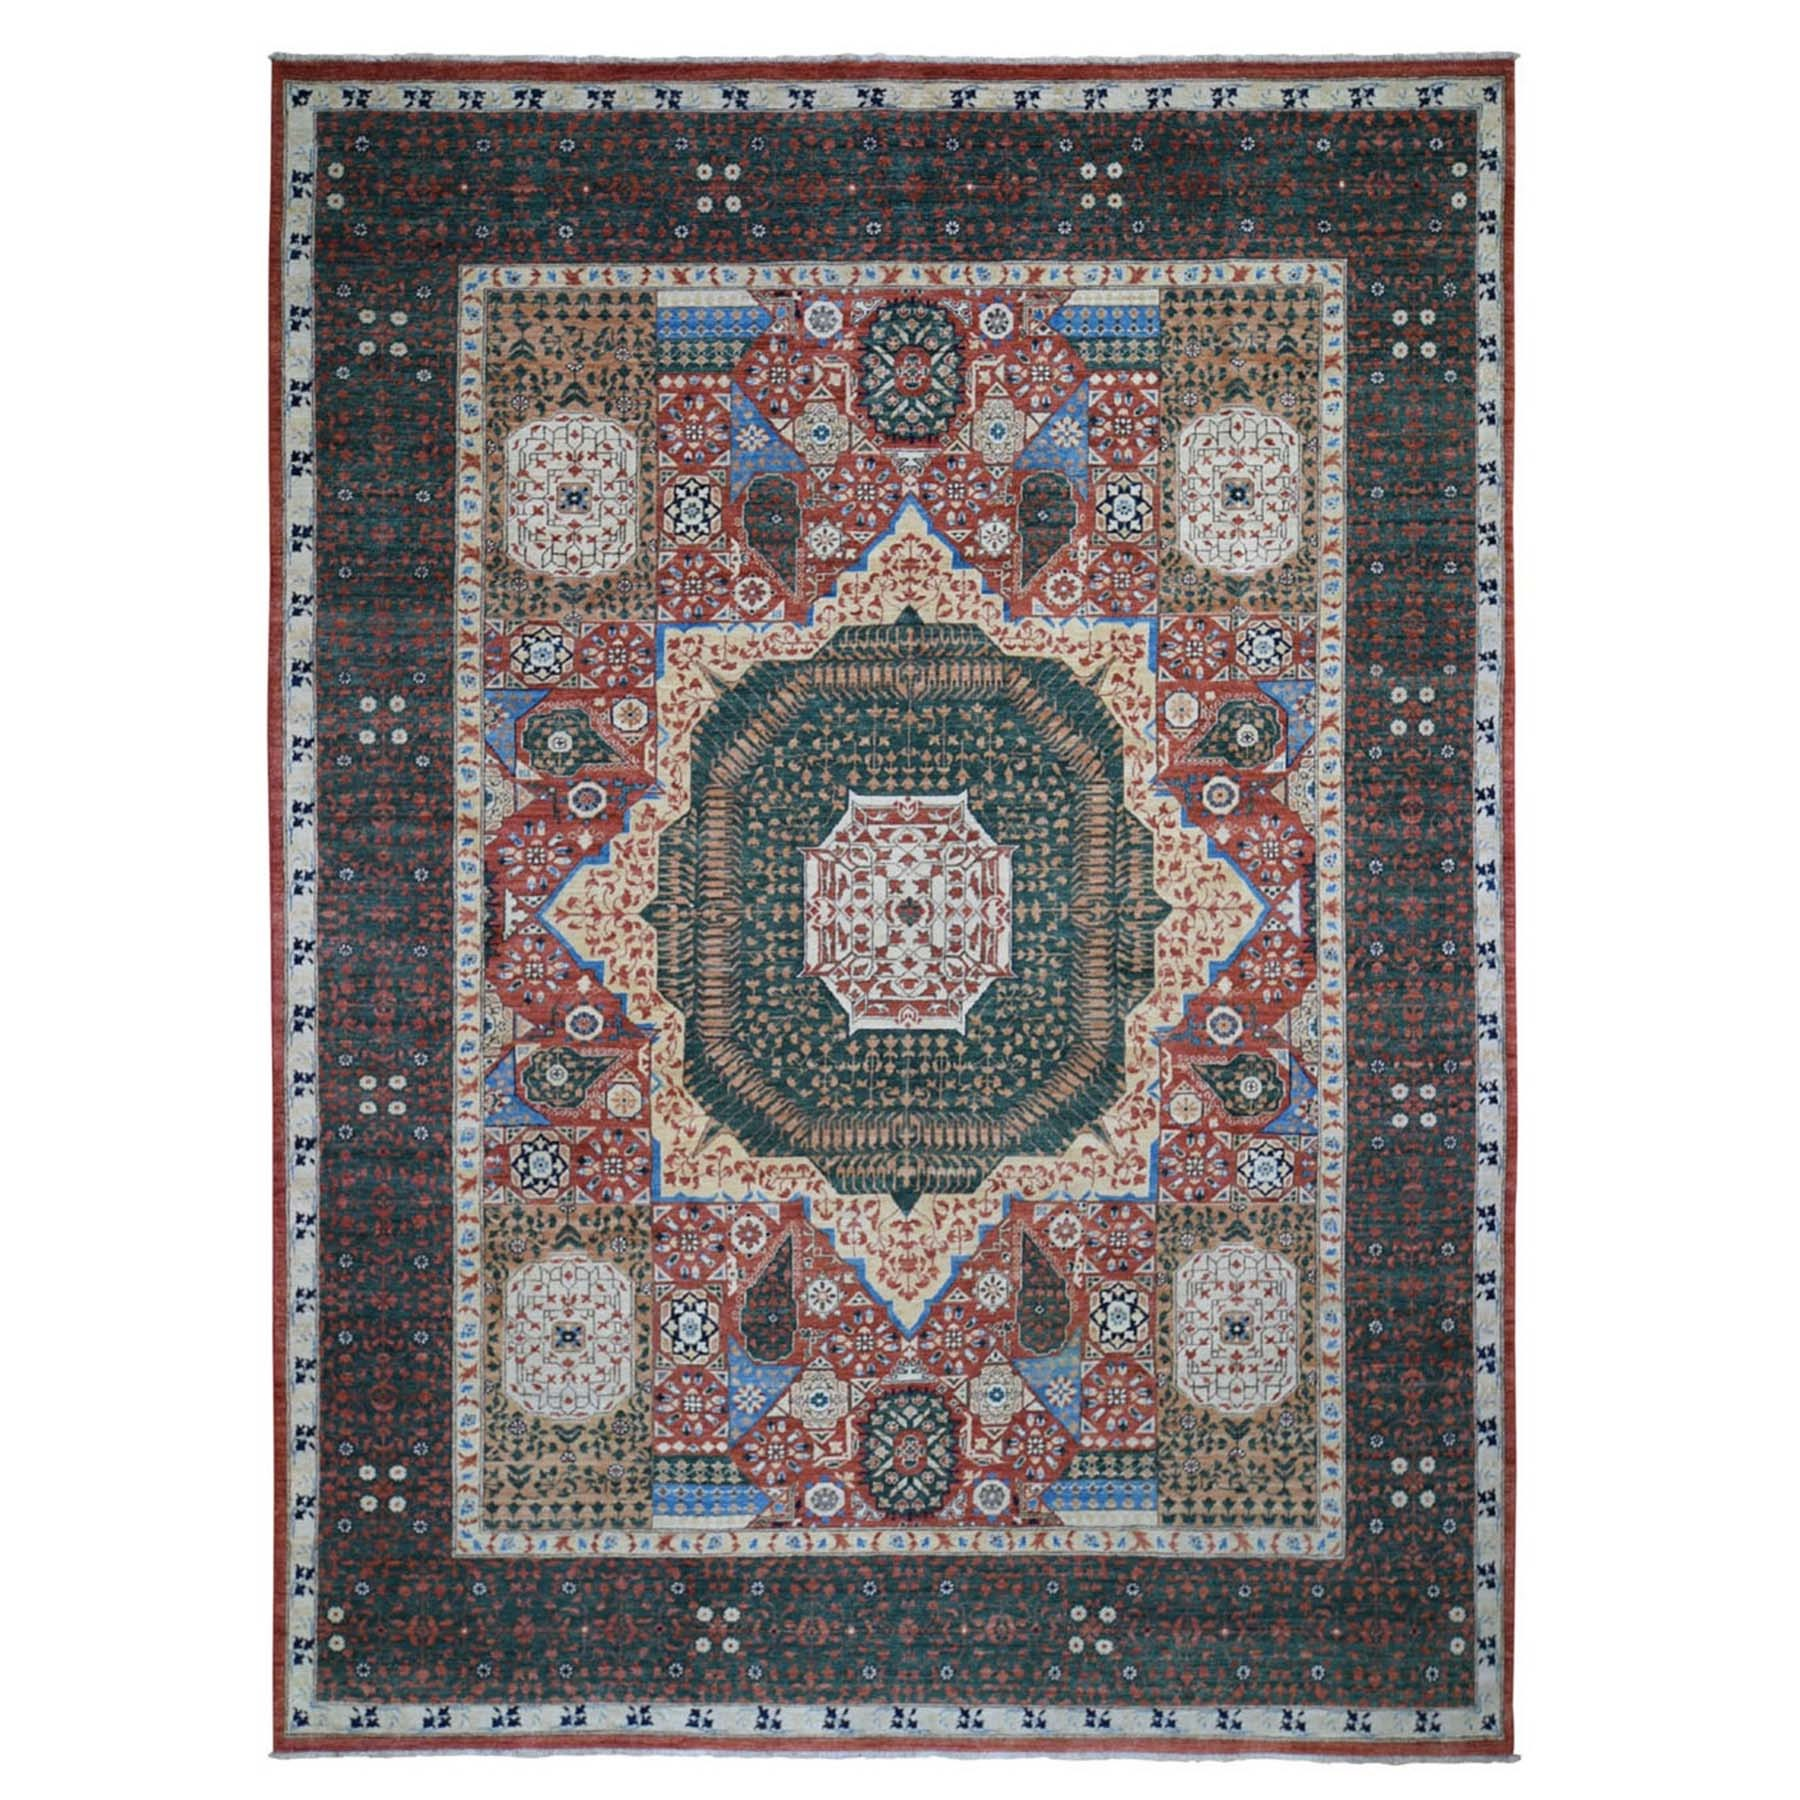 9'X12' Peshawar With Mamluk Design Hand Knotted Pure Wool Oriental Rug moad899d